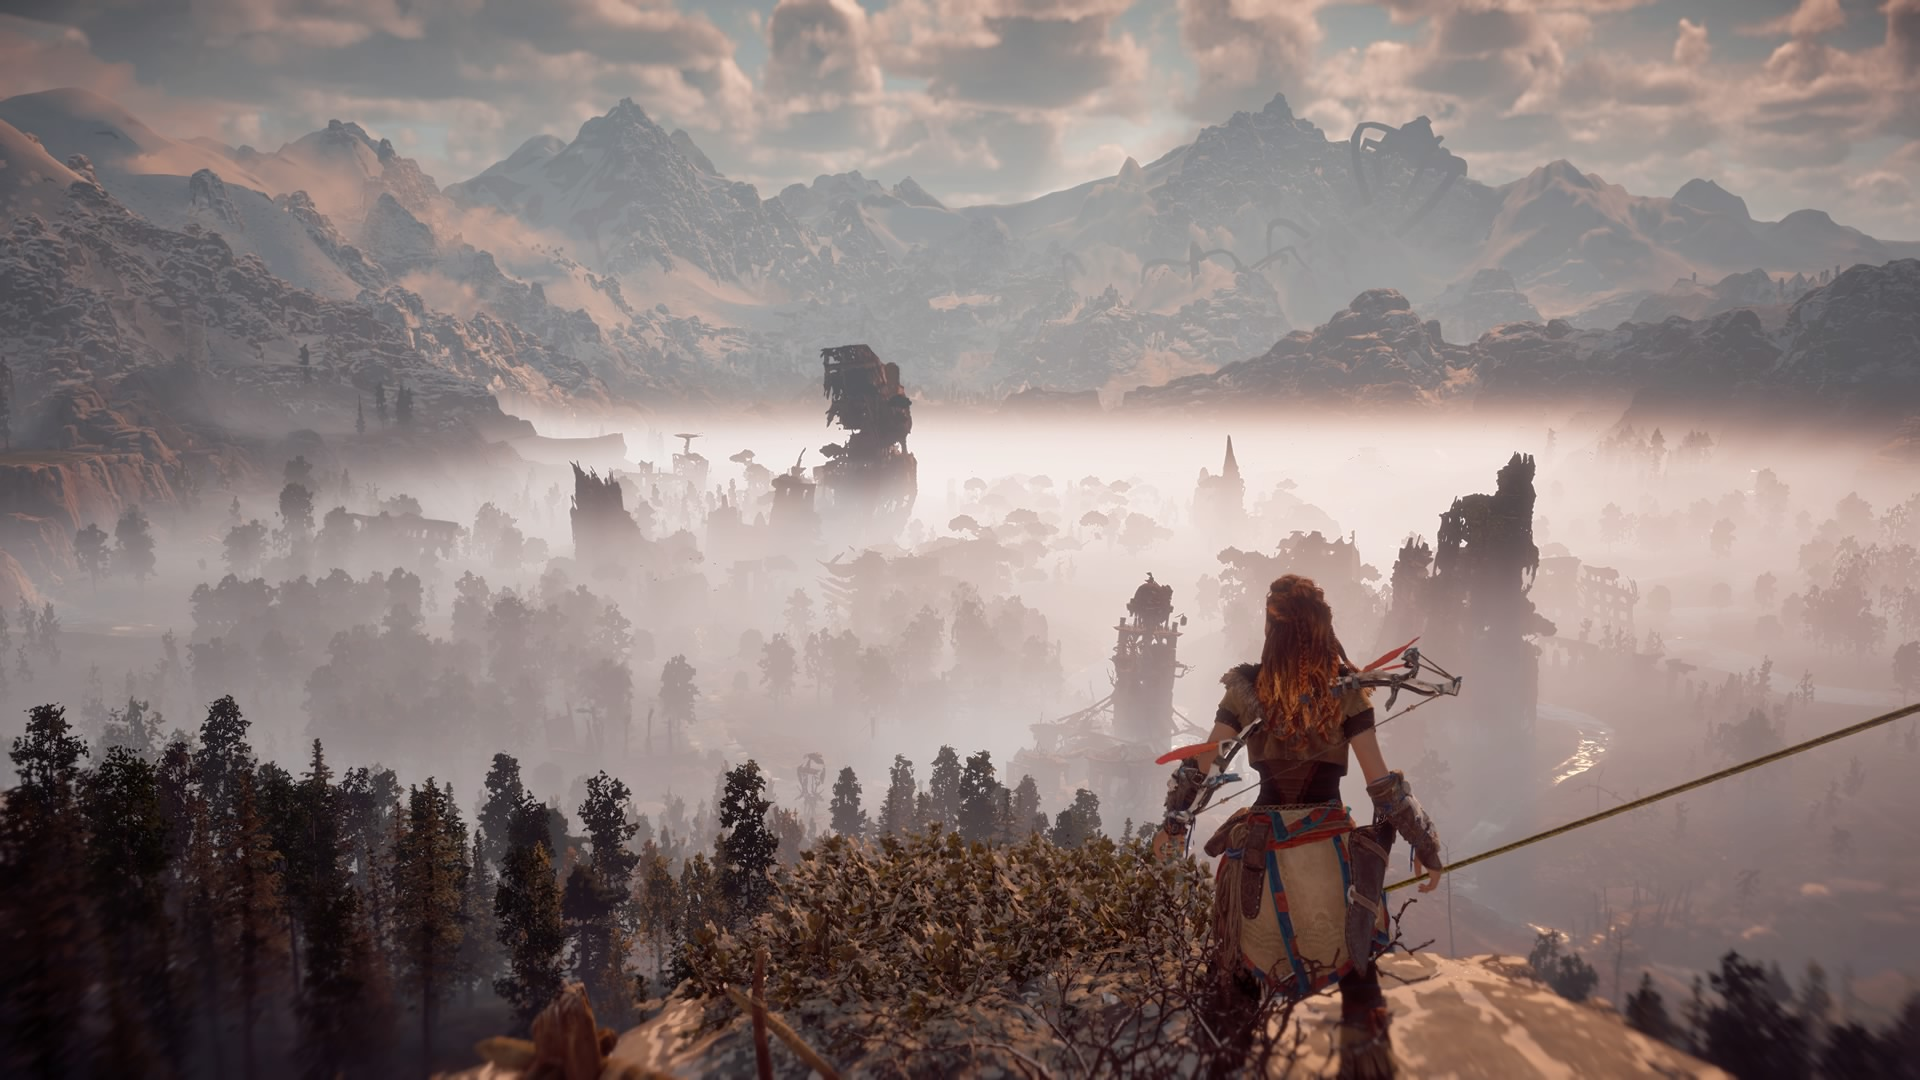 Horizon Zero Dawn Karte Ruinen.Heiliges Land Horizon Zero Dawn Wiki Fandom Powered By Wikia